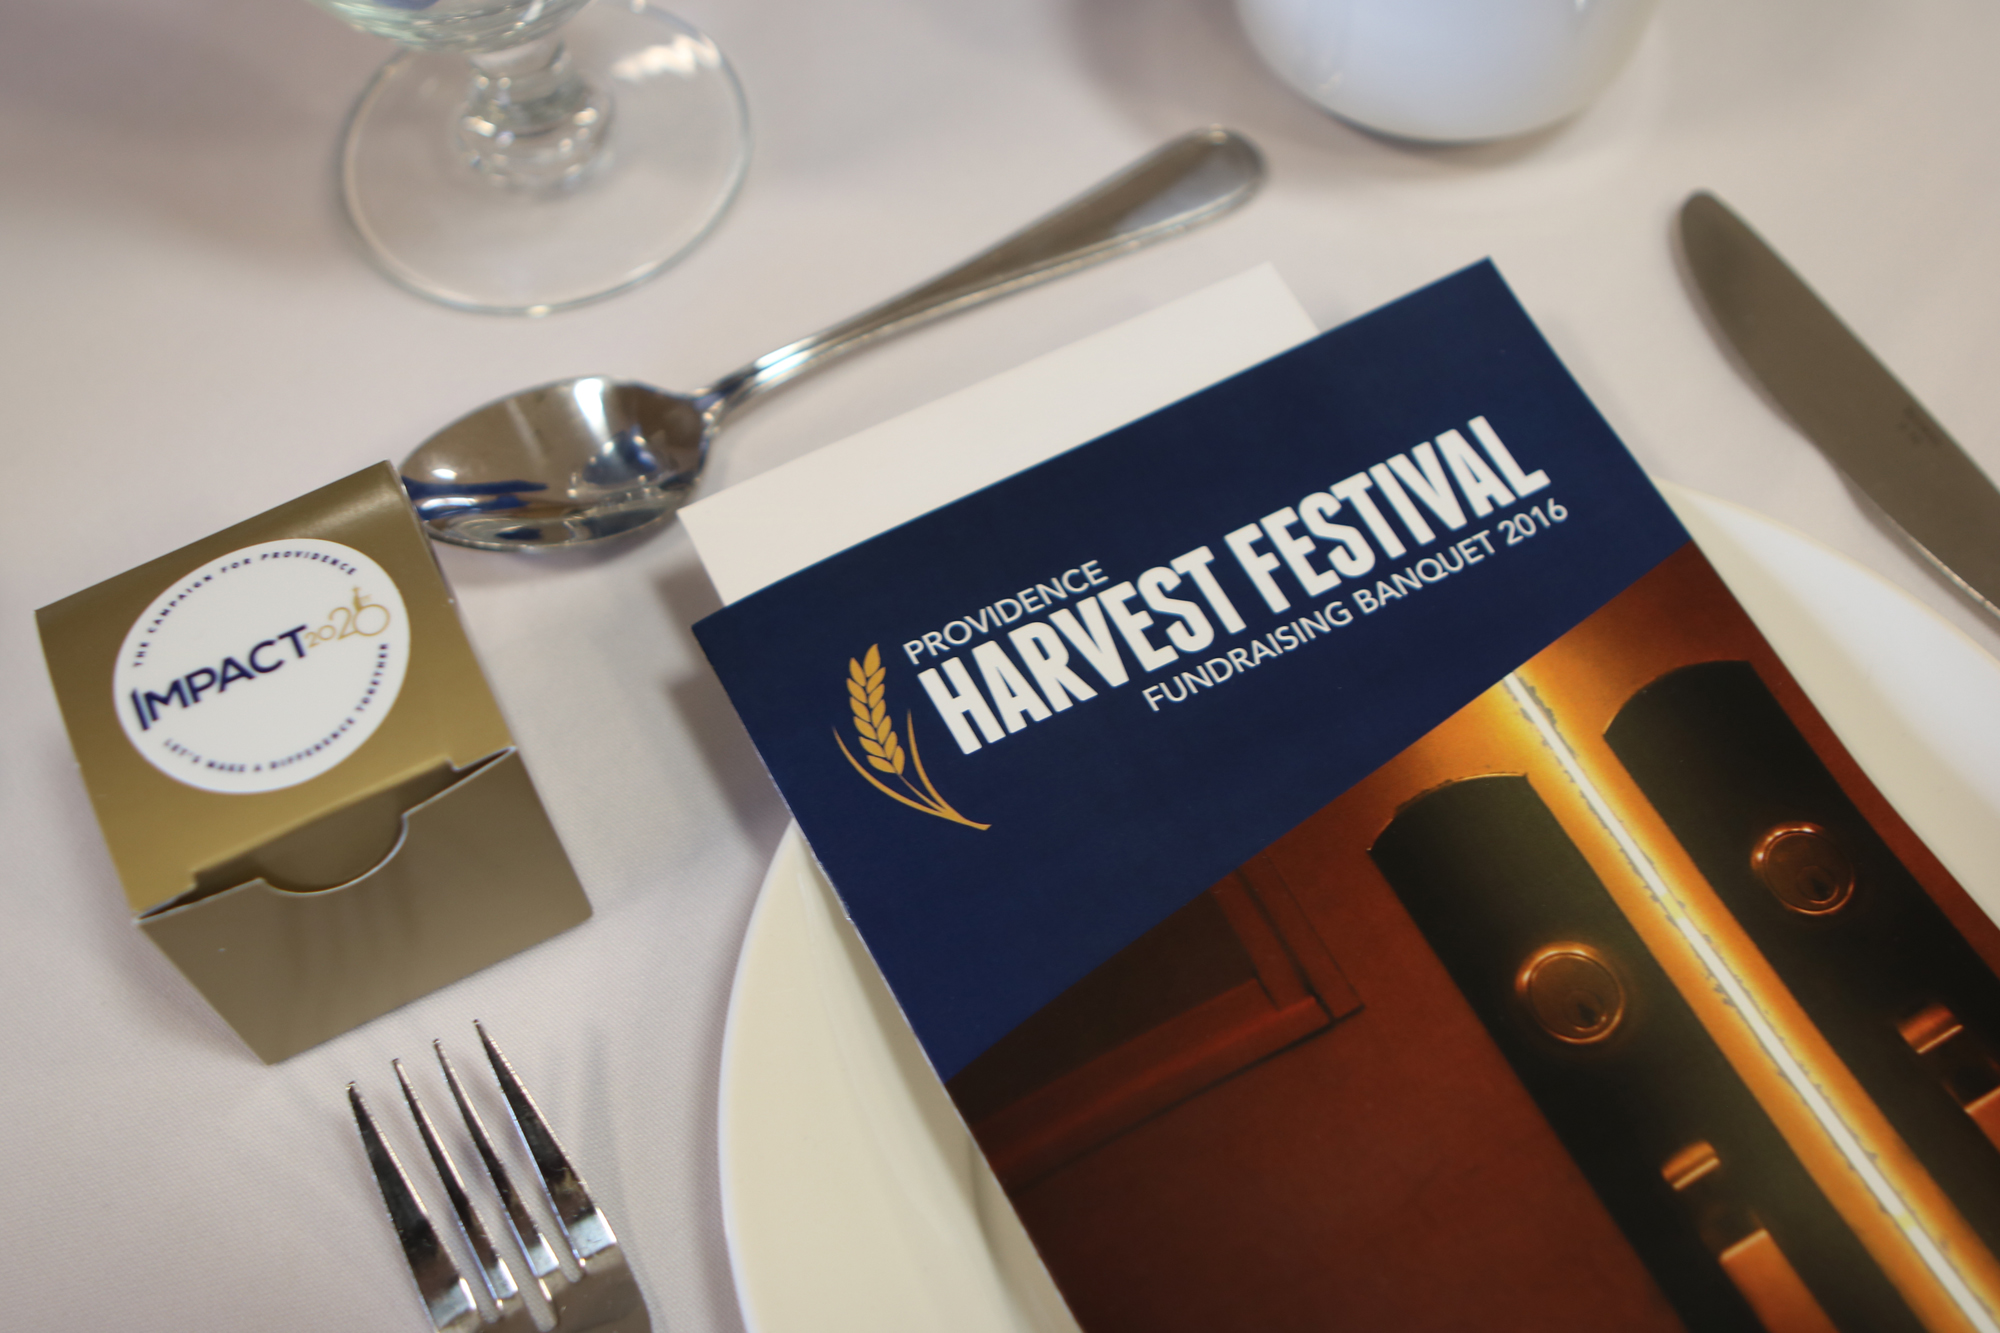 Harvest Festival Showcases Impact 2020 Campaign to Friends of Providence Image